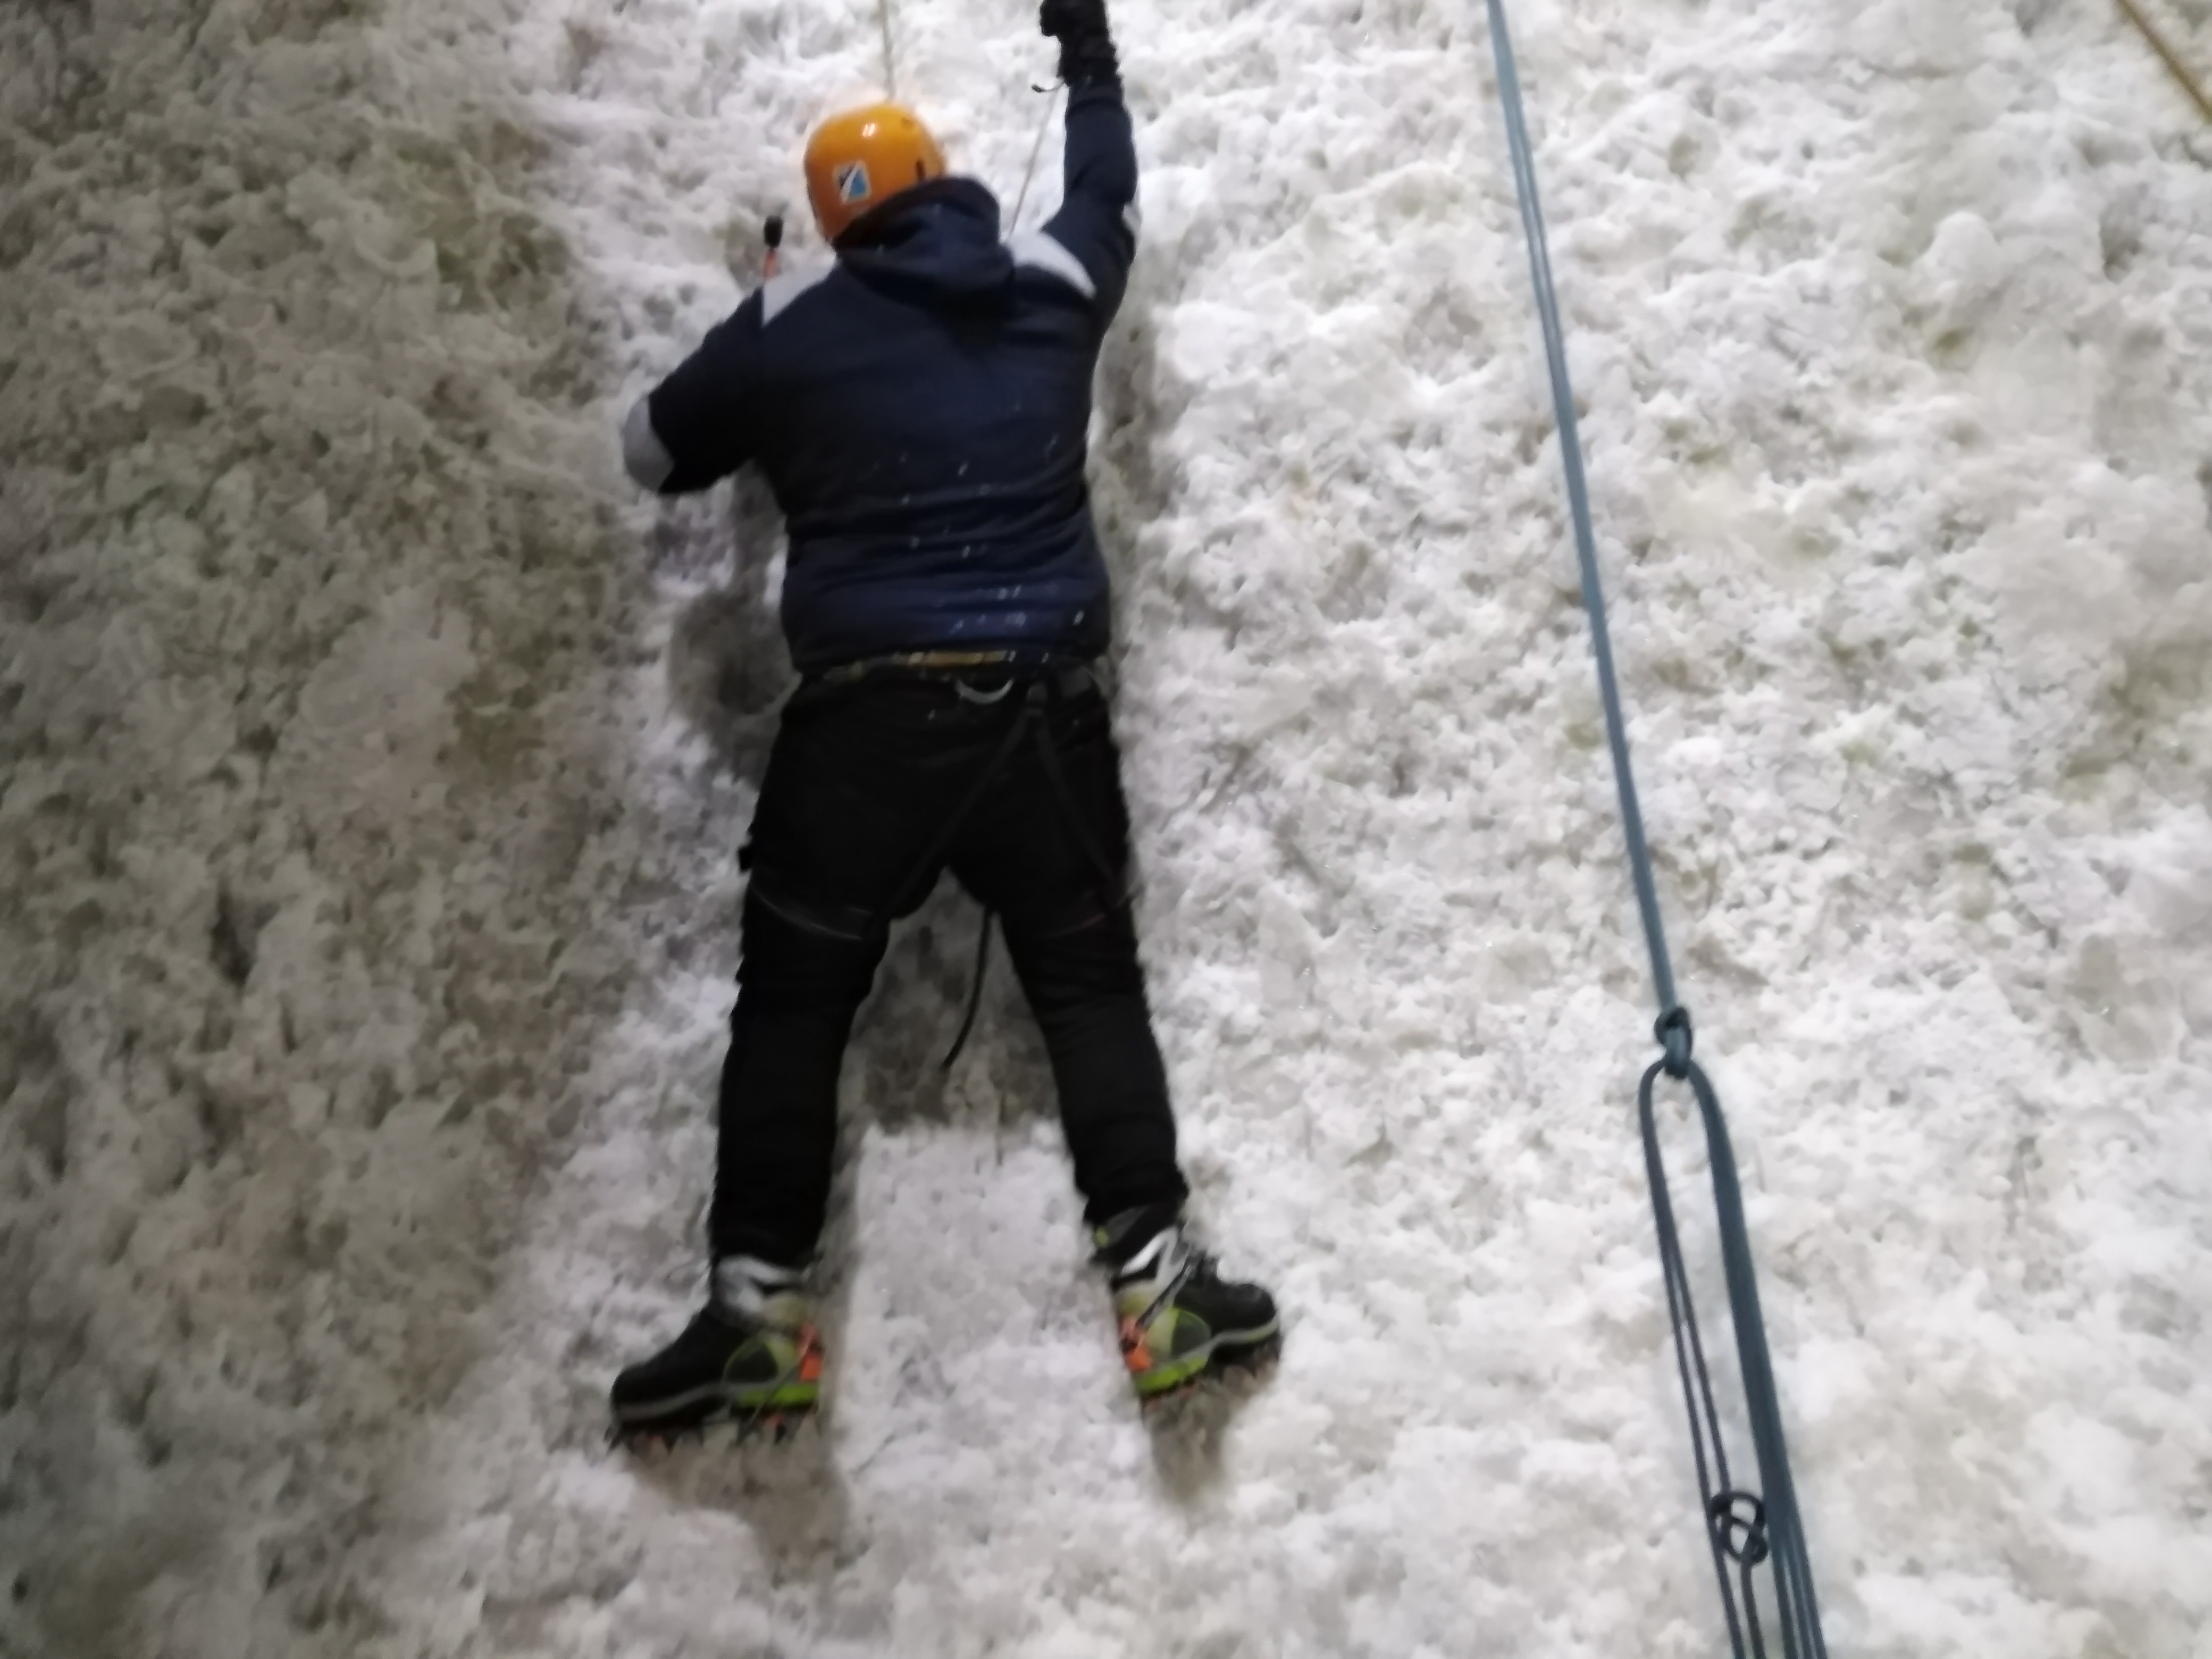 Climbing at the Ice Factory